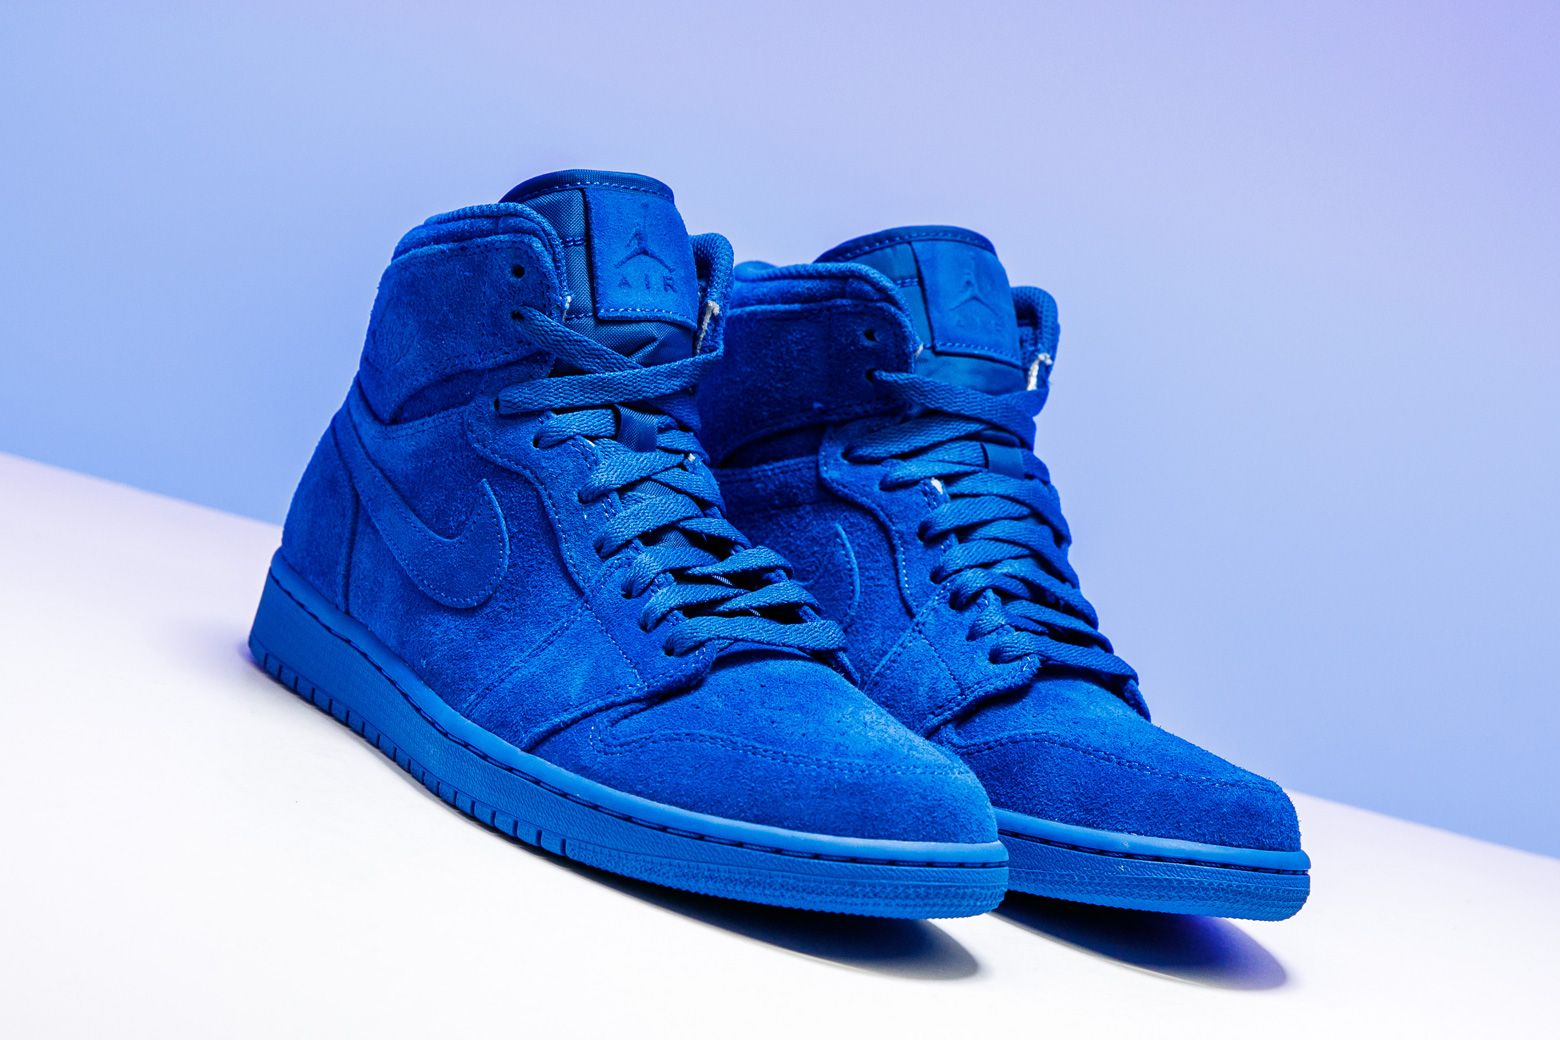 Air Jordan 1 Retro High Blue Suede 332550 404 With Images